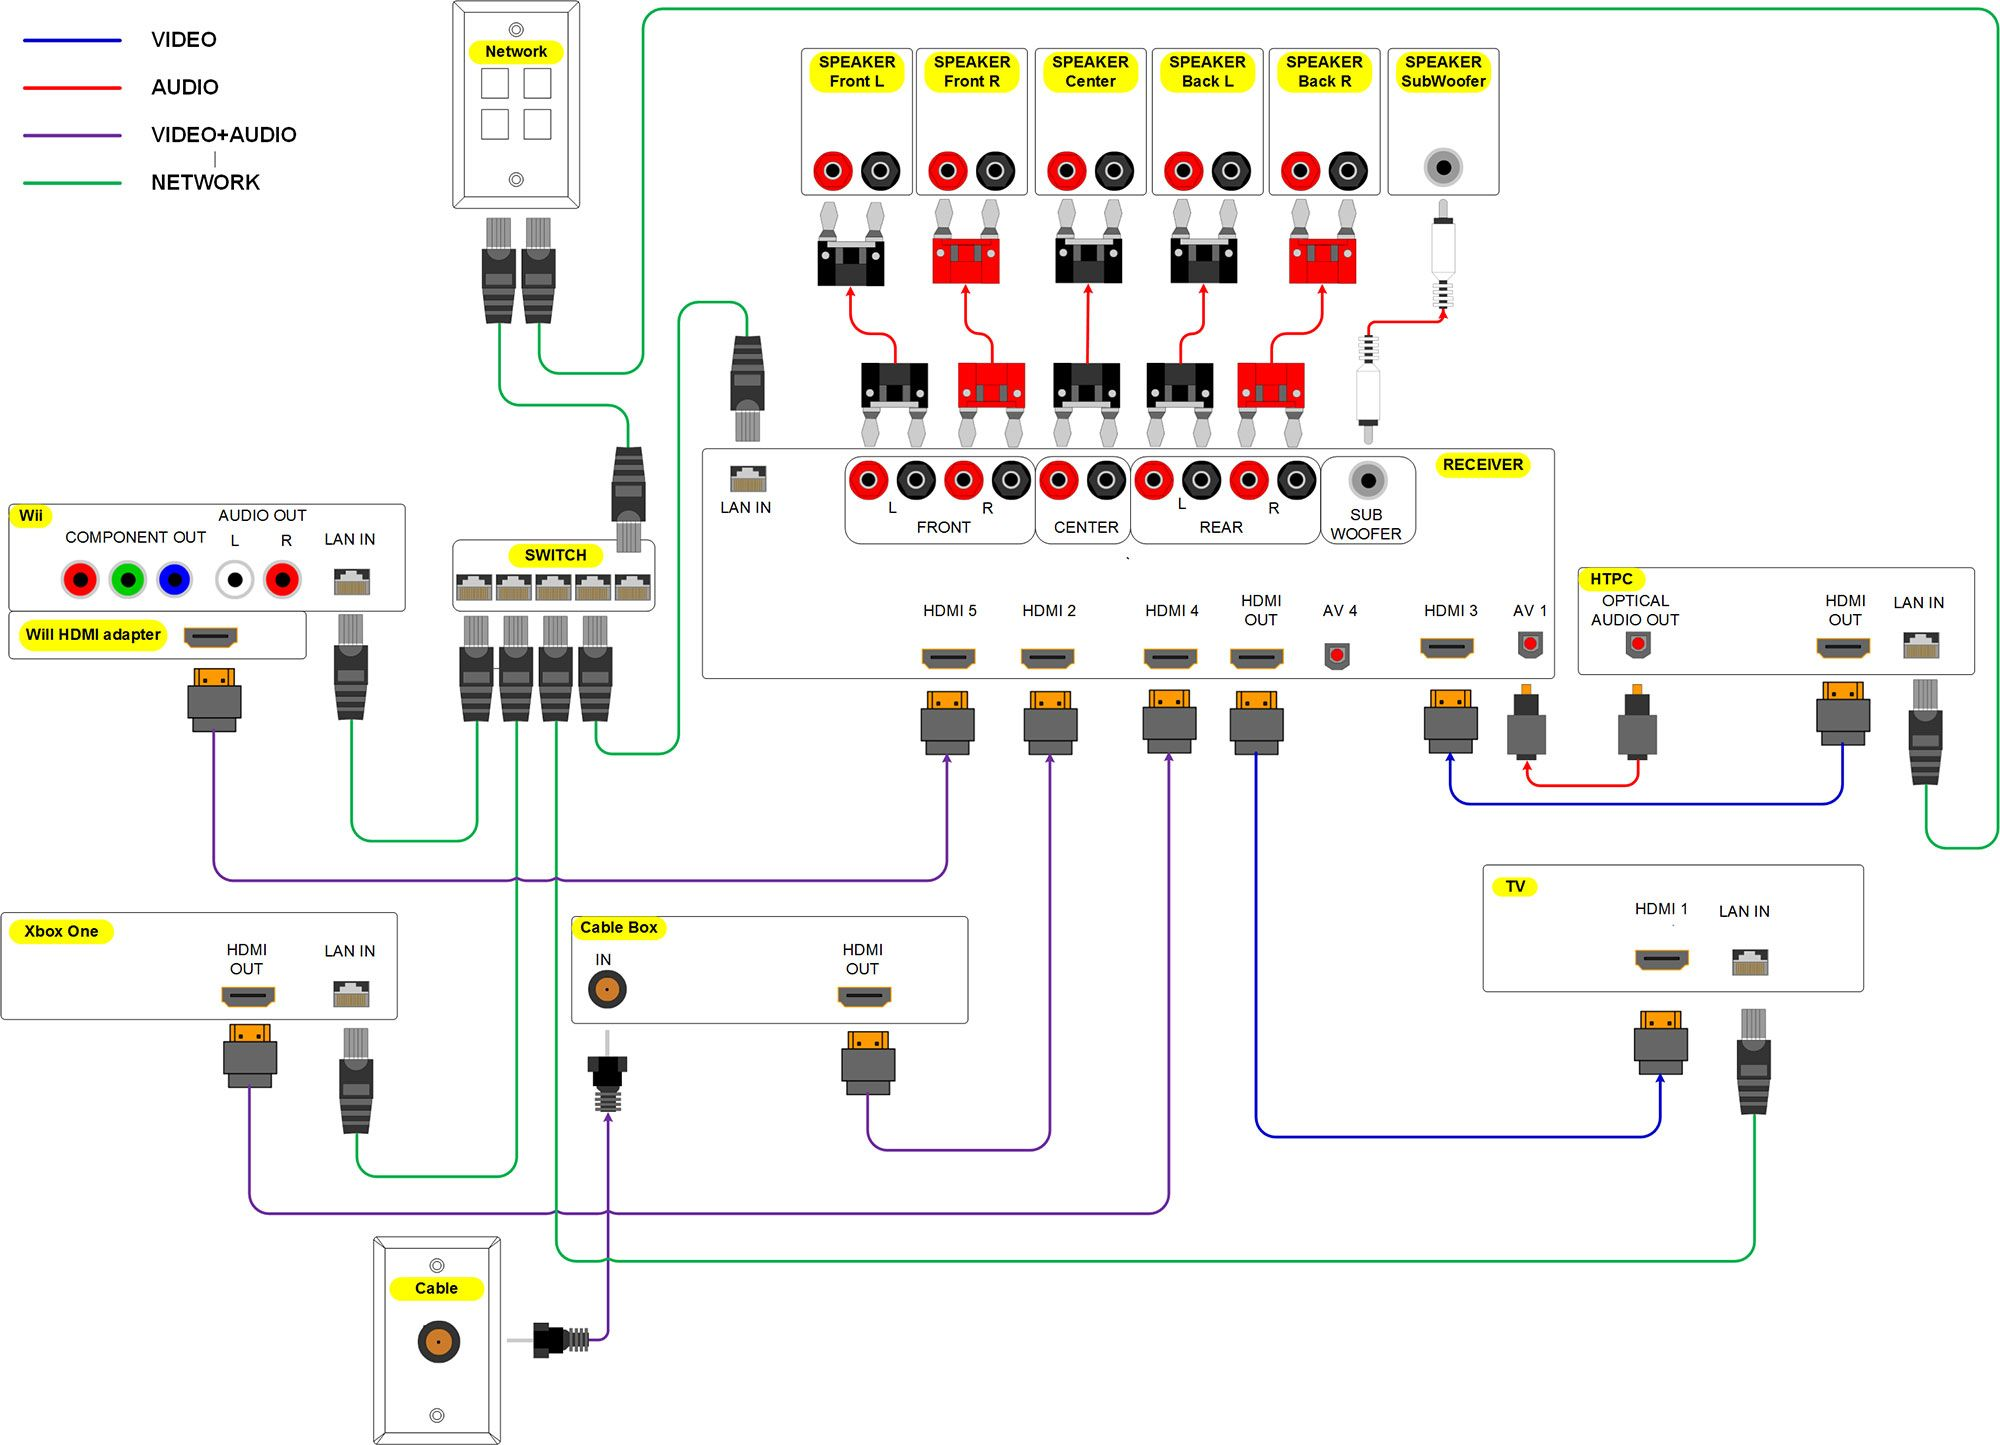 medium resolution of home theater wiring diagram click it to see the big 2000 pixel wide